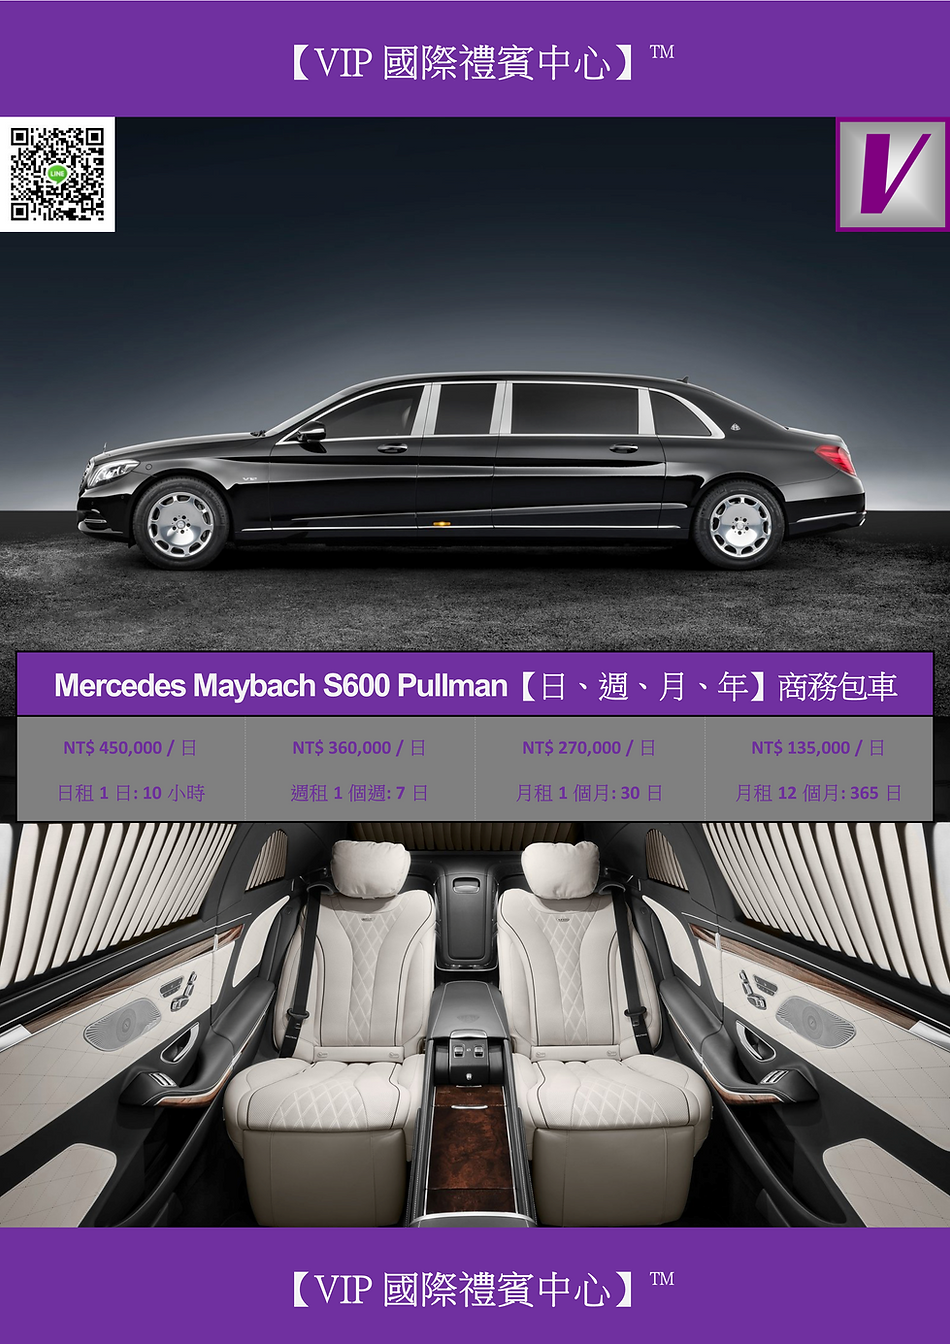 VIP國際禮賓中心 MERCEDES MAYBACH S600 PULLMAN